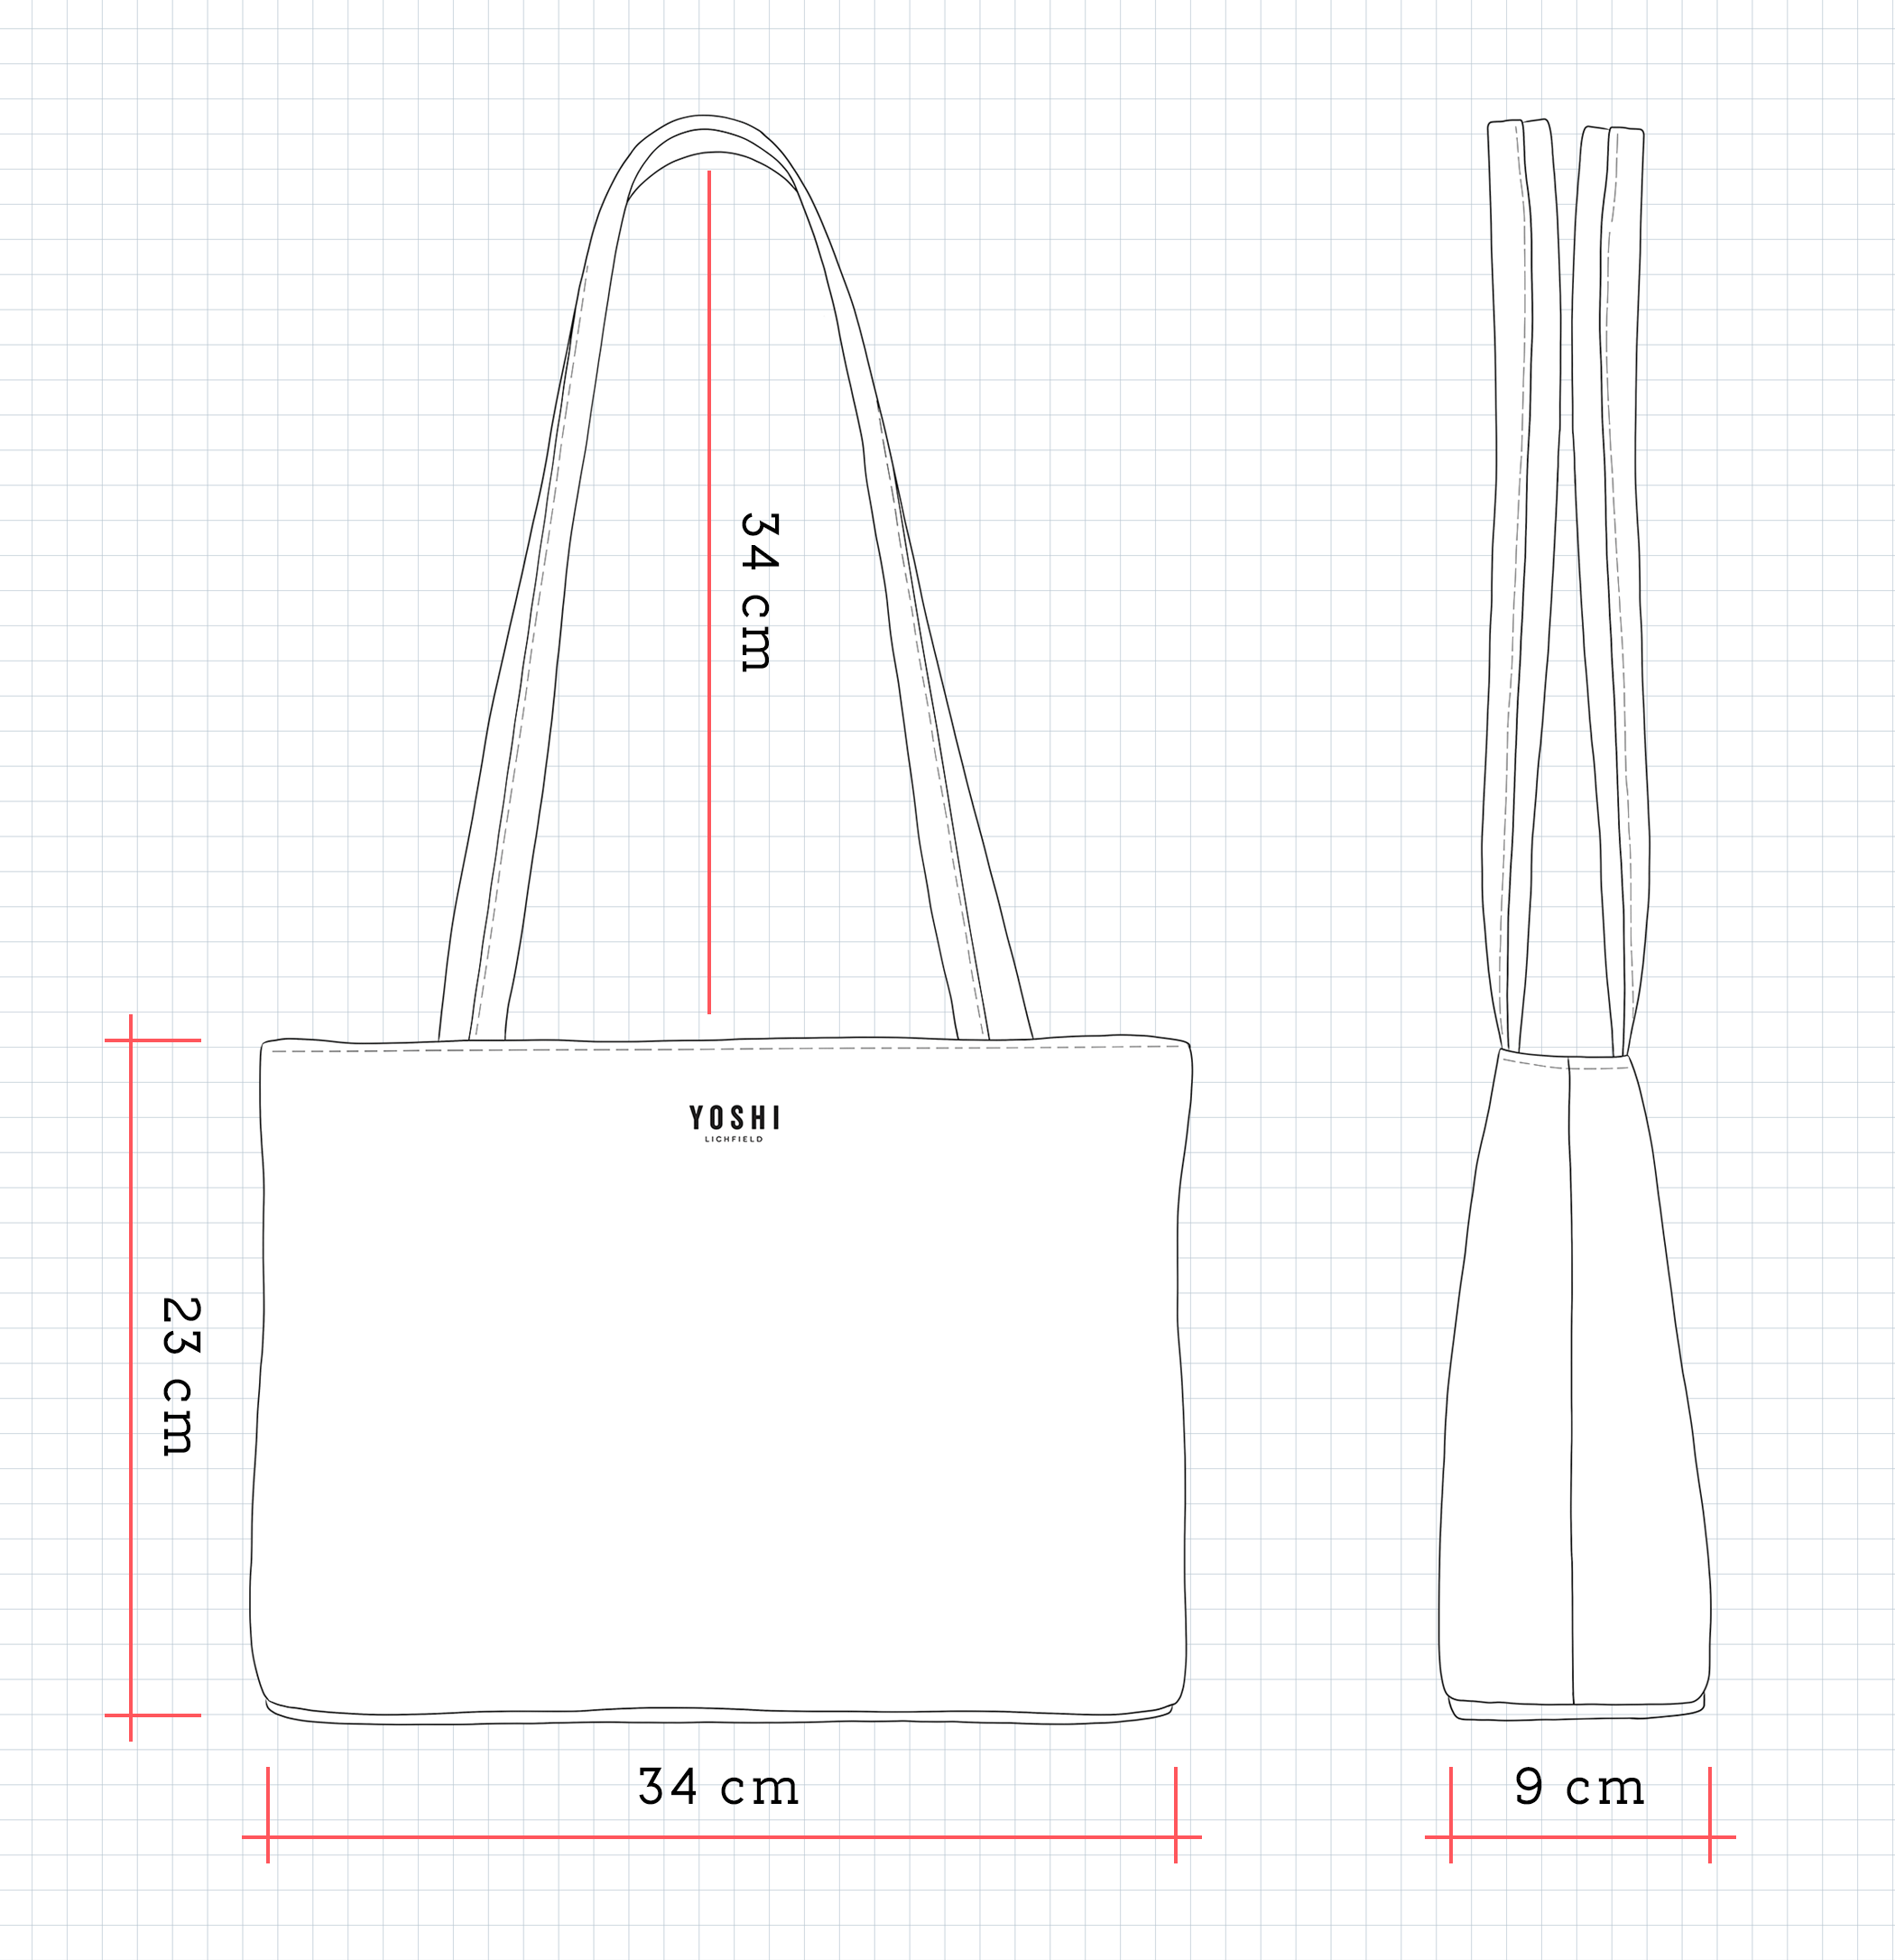 YB98 Leather Shoulder Bag Dimensions